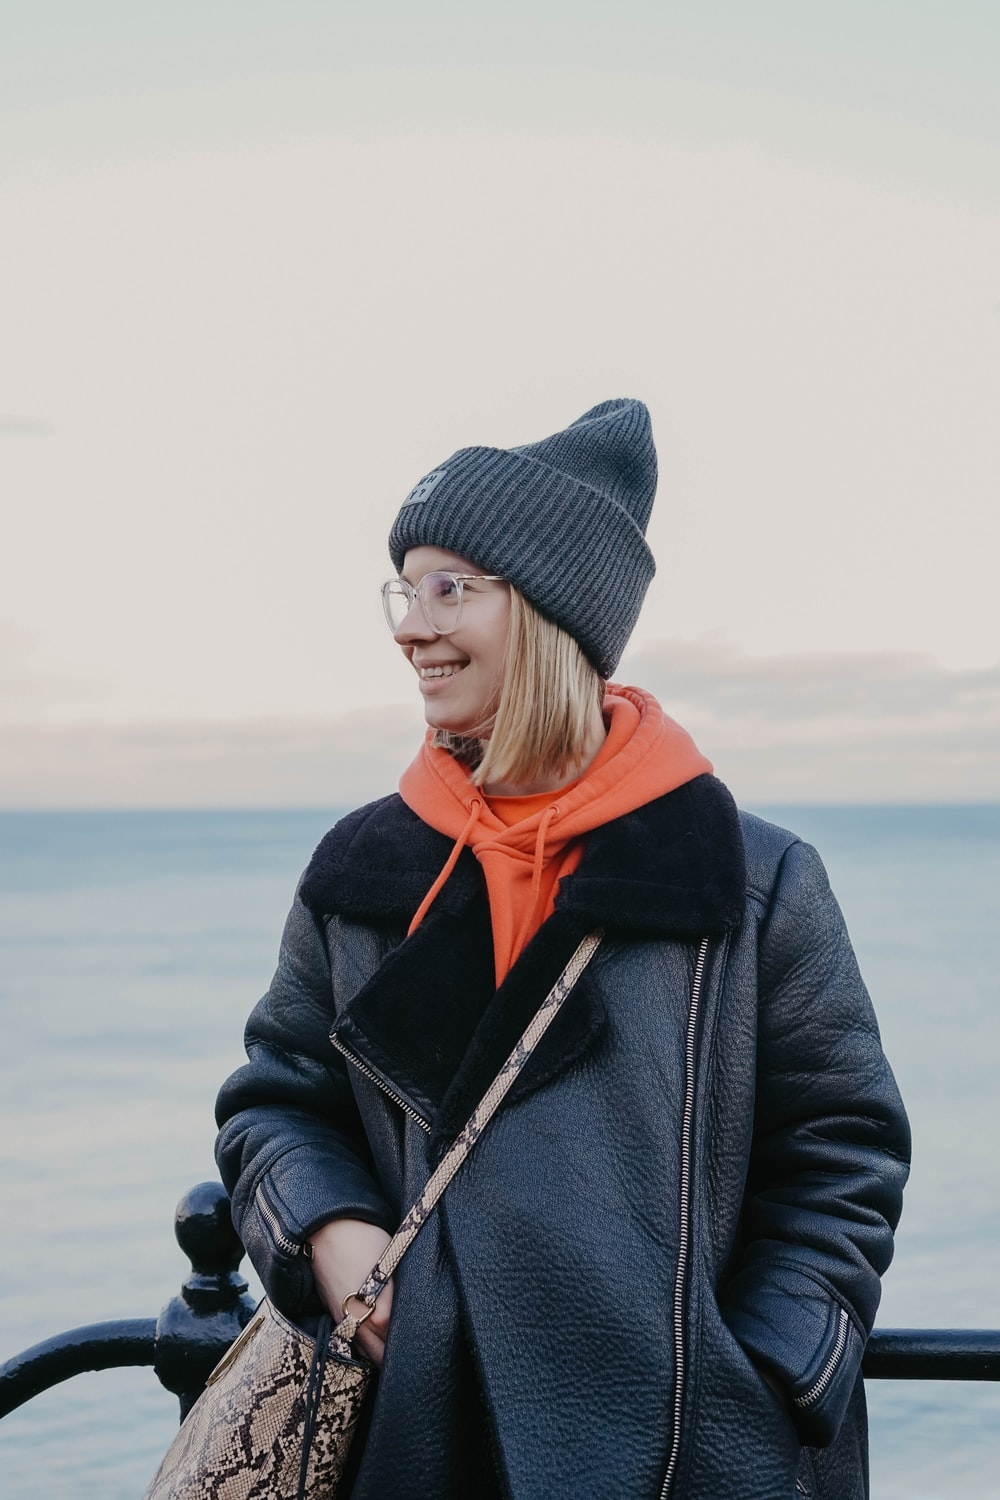 woman in black knit cap and gray coat standing on beach during daytime